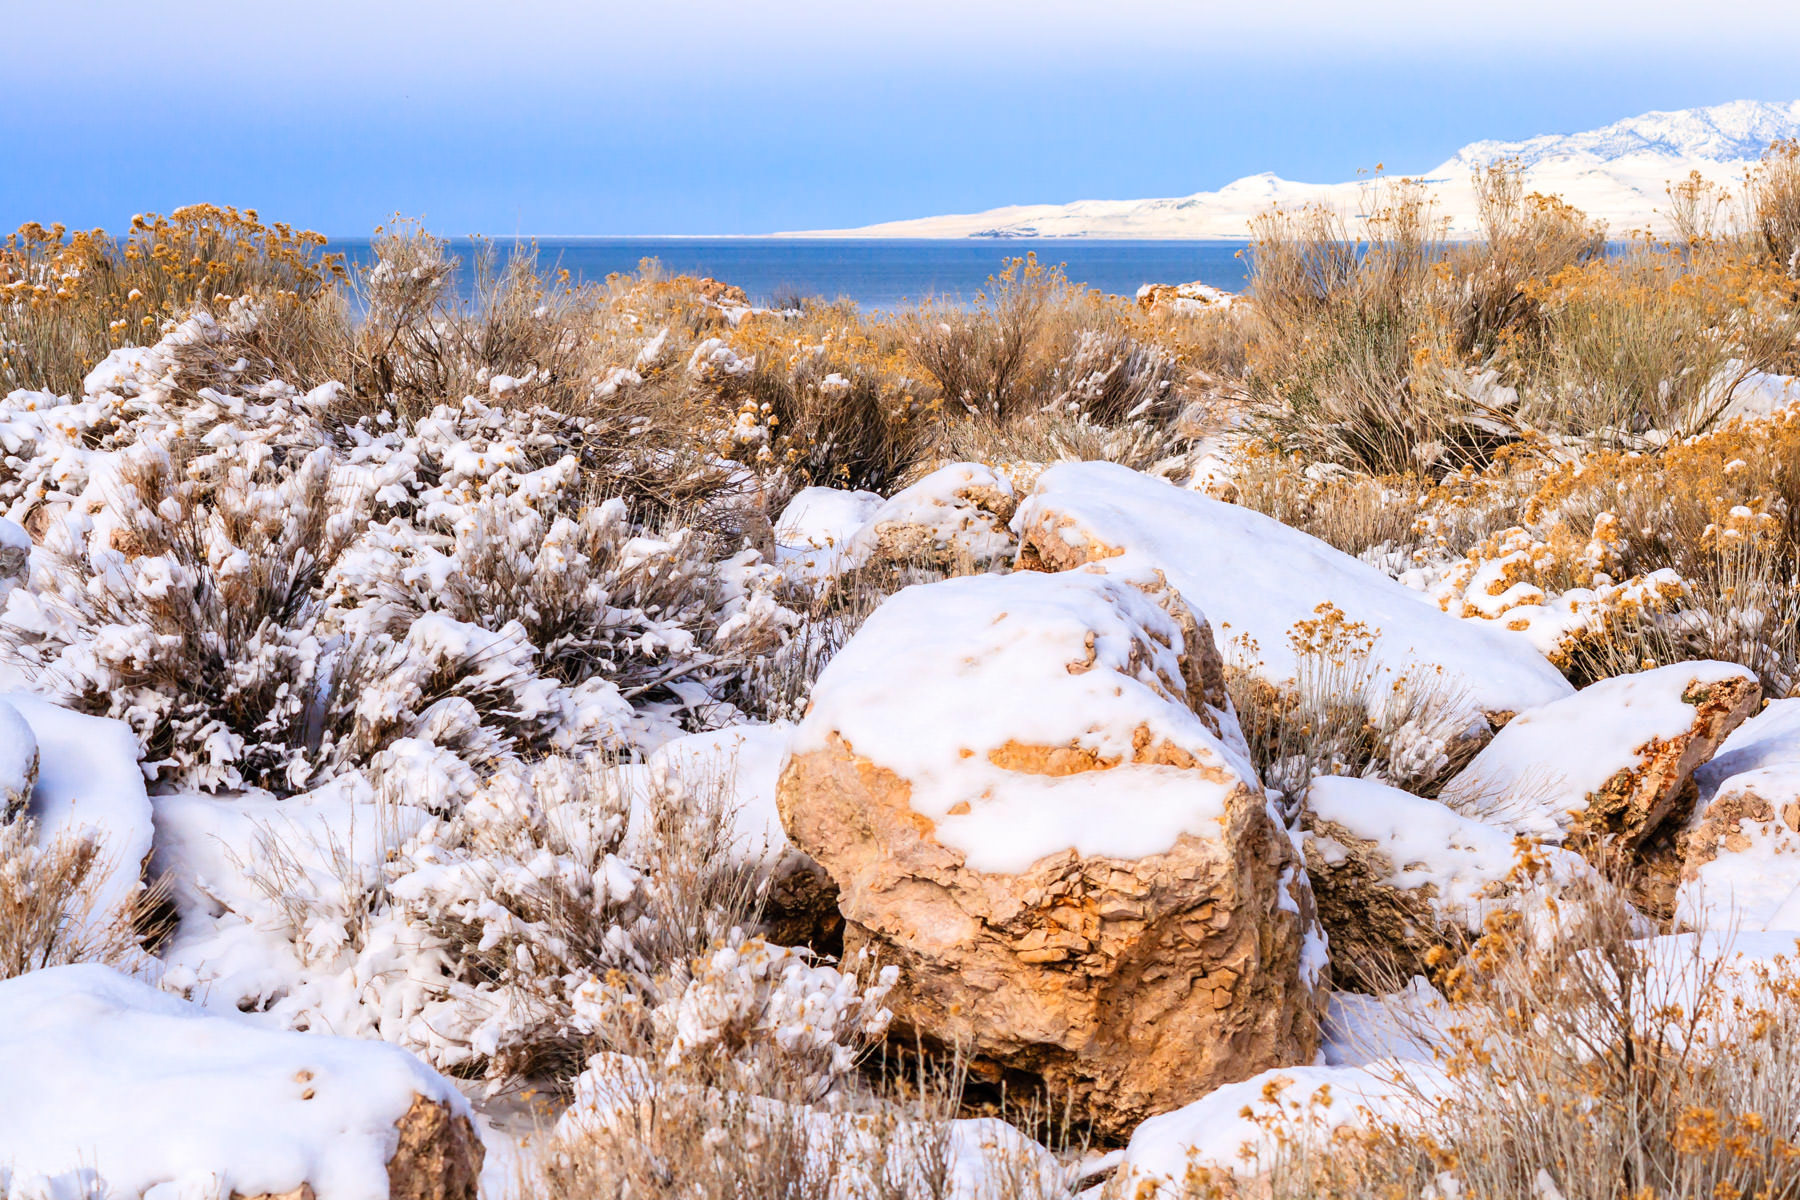 Snow-covered rocks at the desolate Antelope Island State Park, Utah.